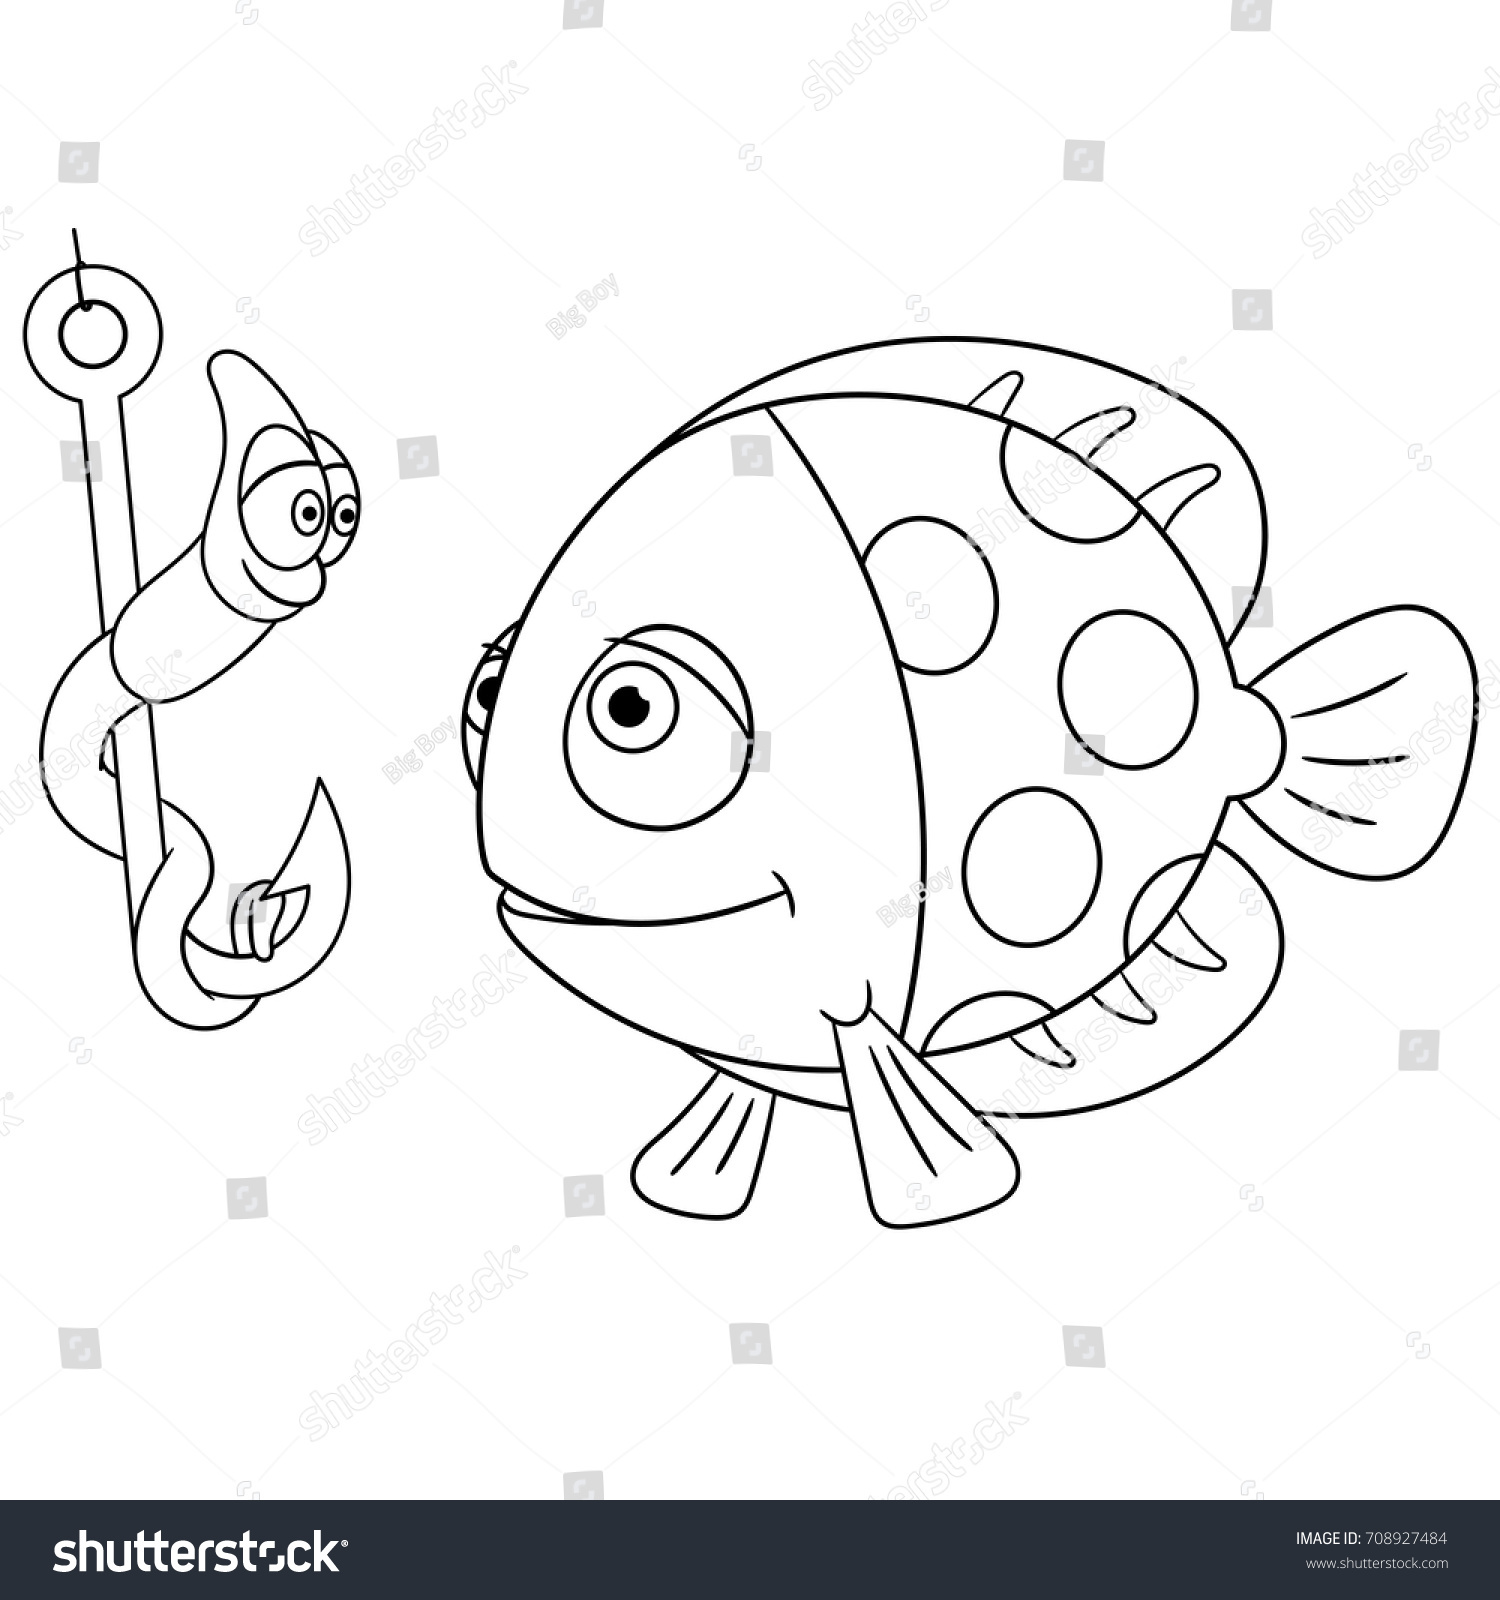 Coloring Page Cartoon Fish Worm On Stock Vector 708927484